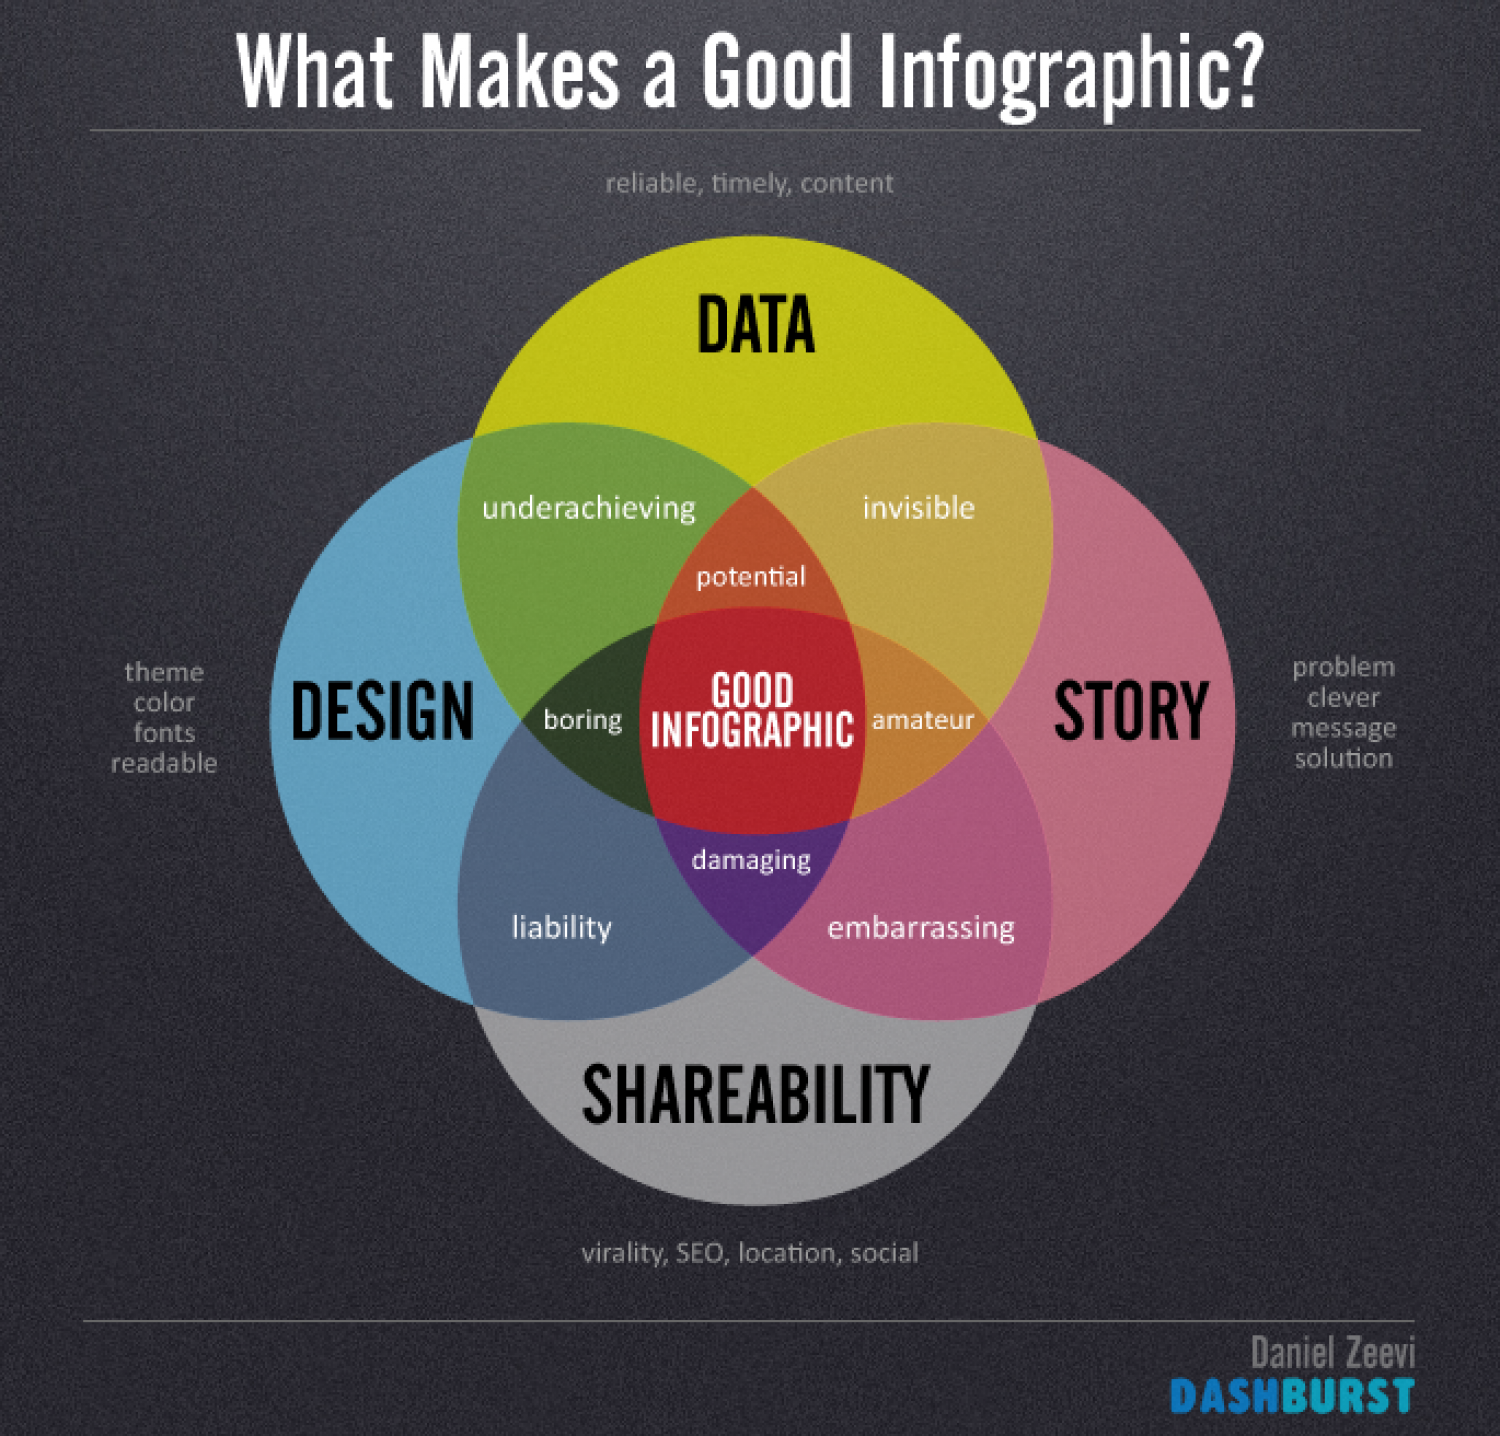 What Makes a Good Infographic? Infographic